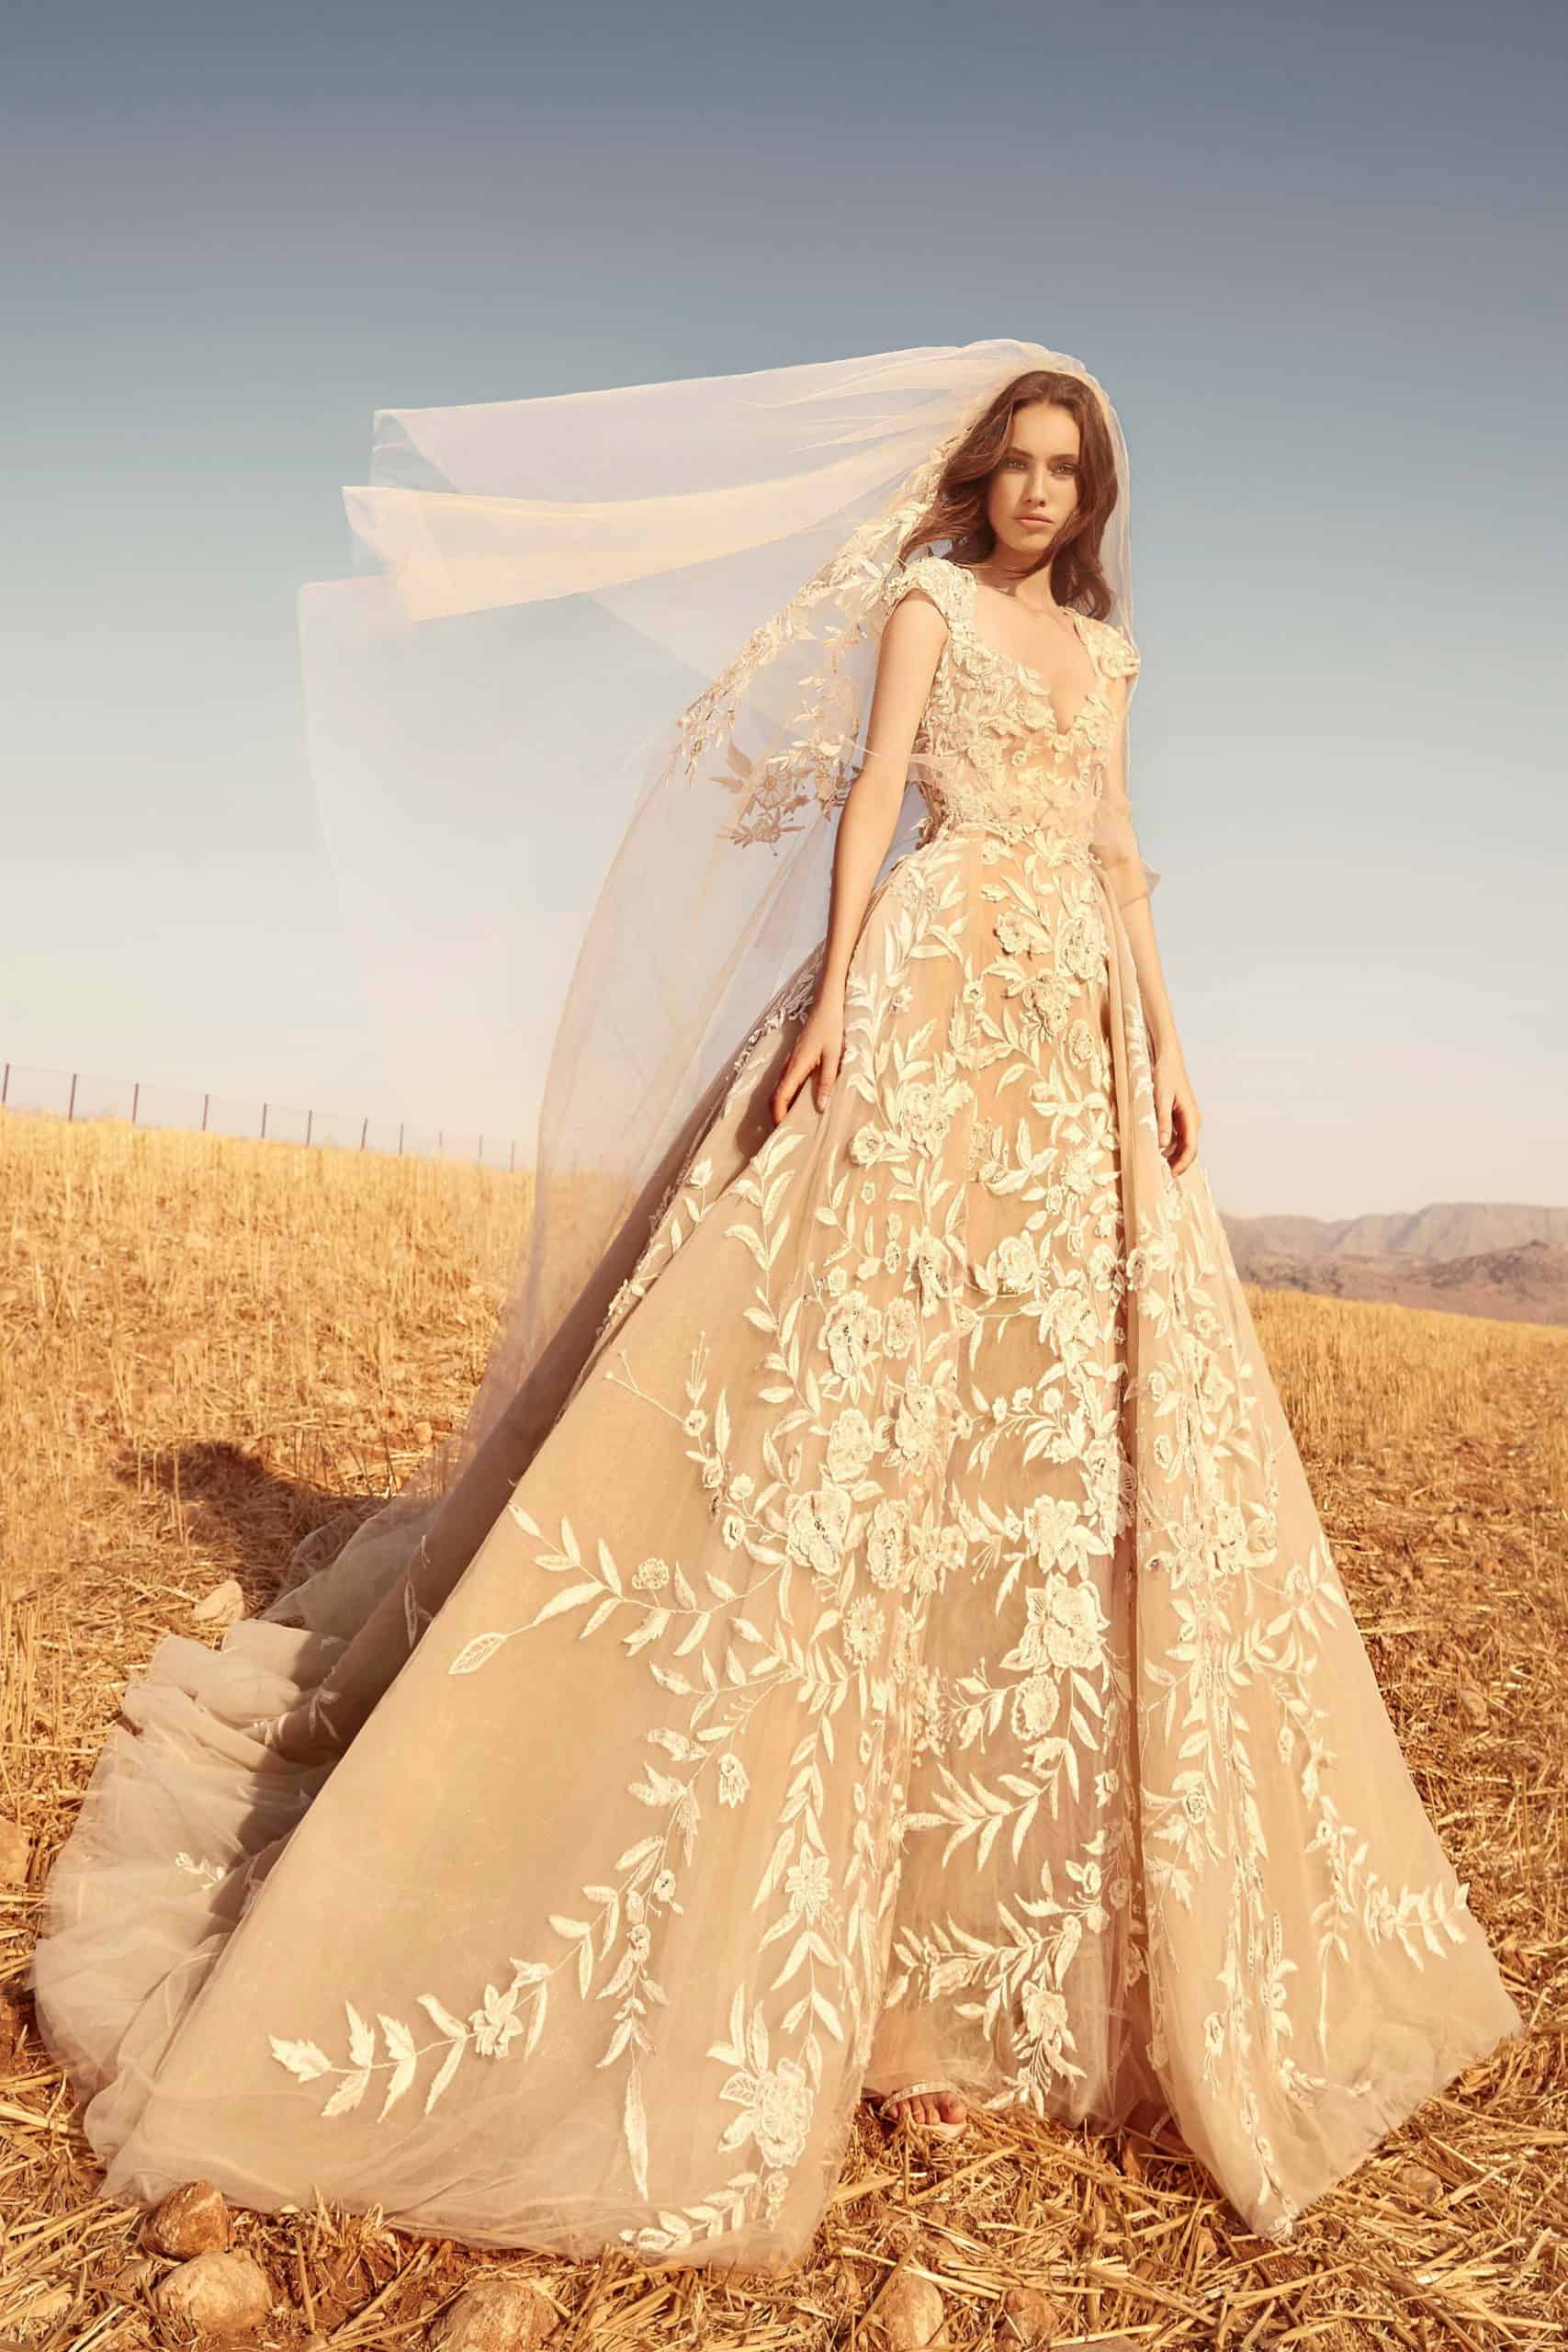 beige wedding dress with embossed flower lace by Zuhair Murad